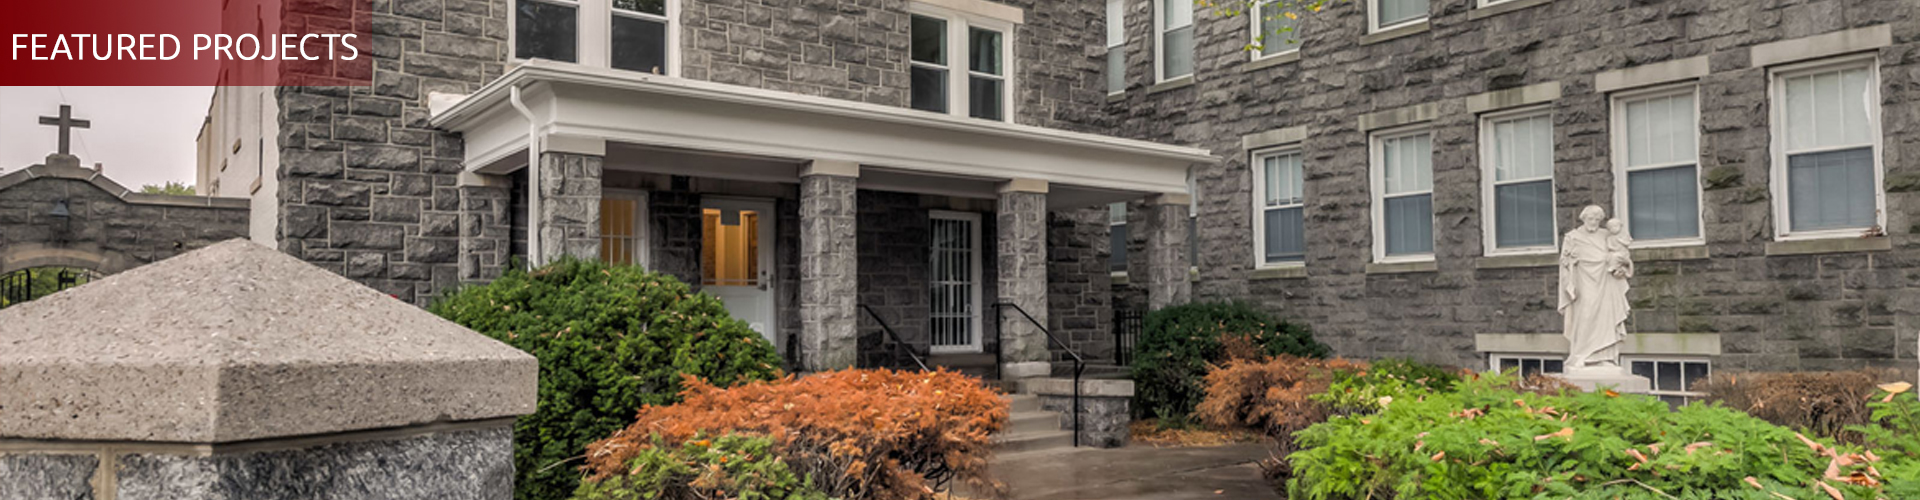 Blessed Sacrament Rectory renovation for Marian House, Baltimore MD, by UrbanBuilt